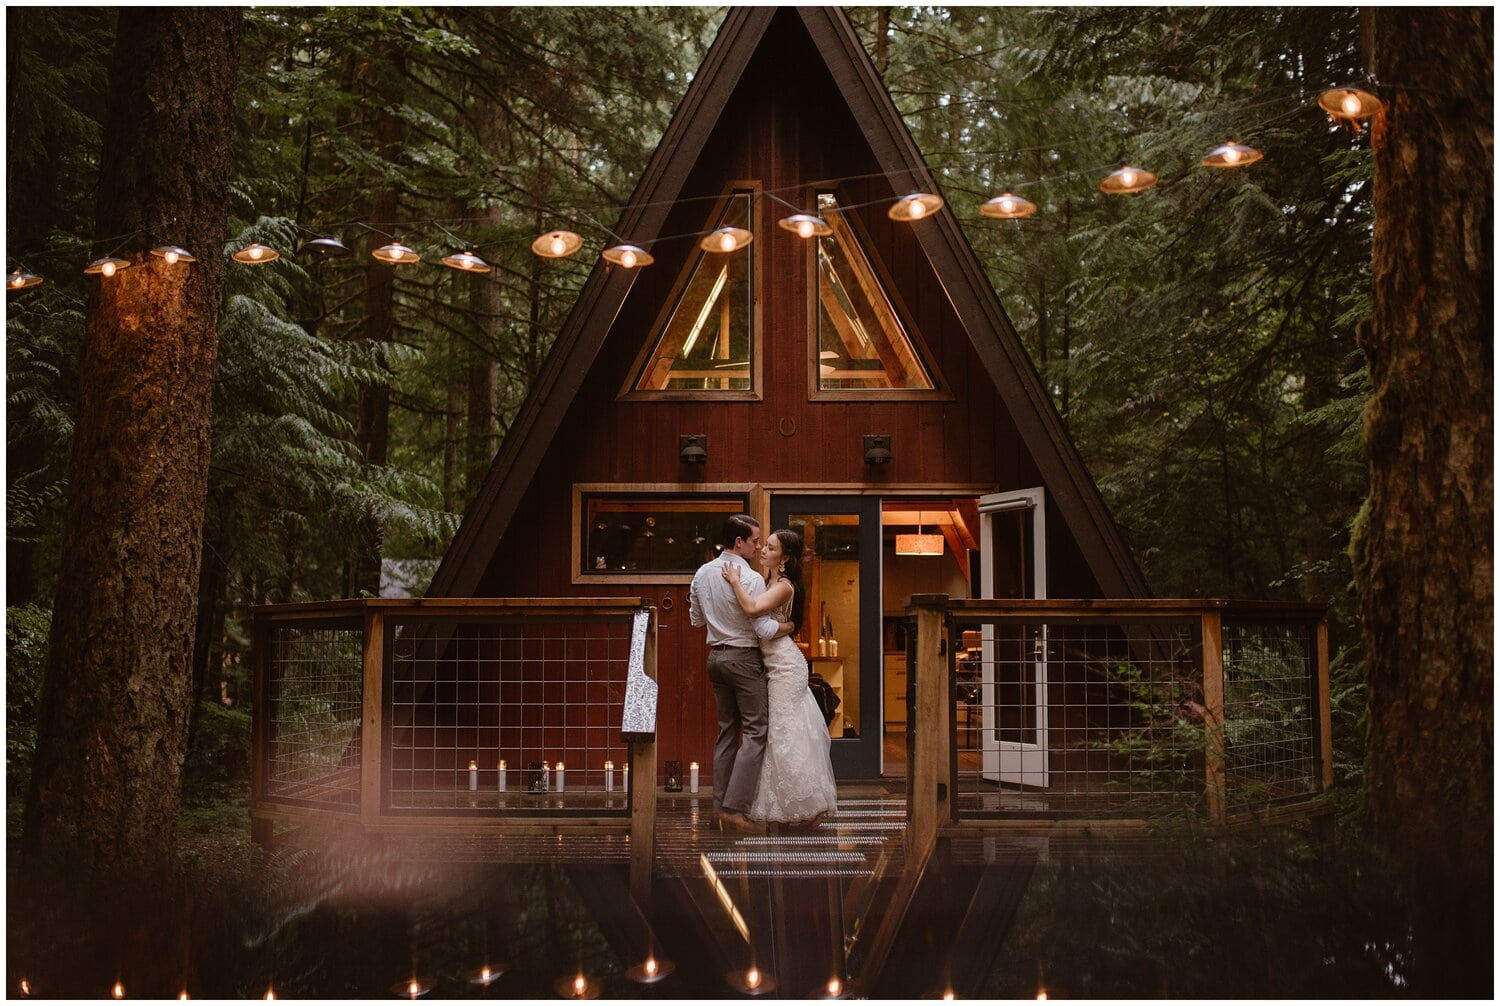 Bride and groom embrace in front of a romantic treehouse.